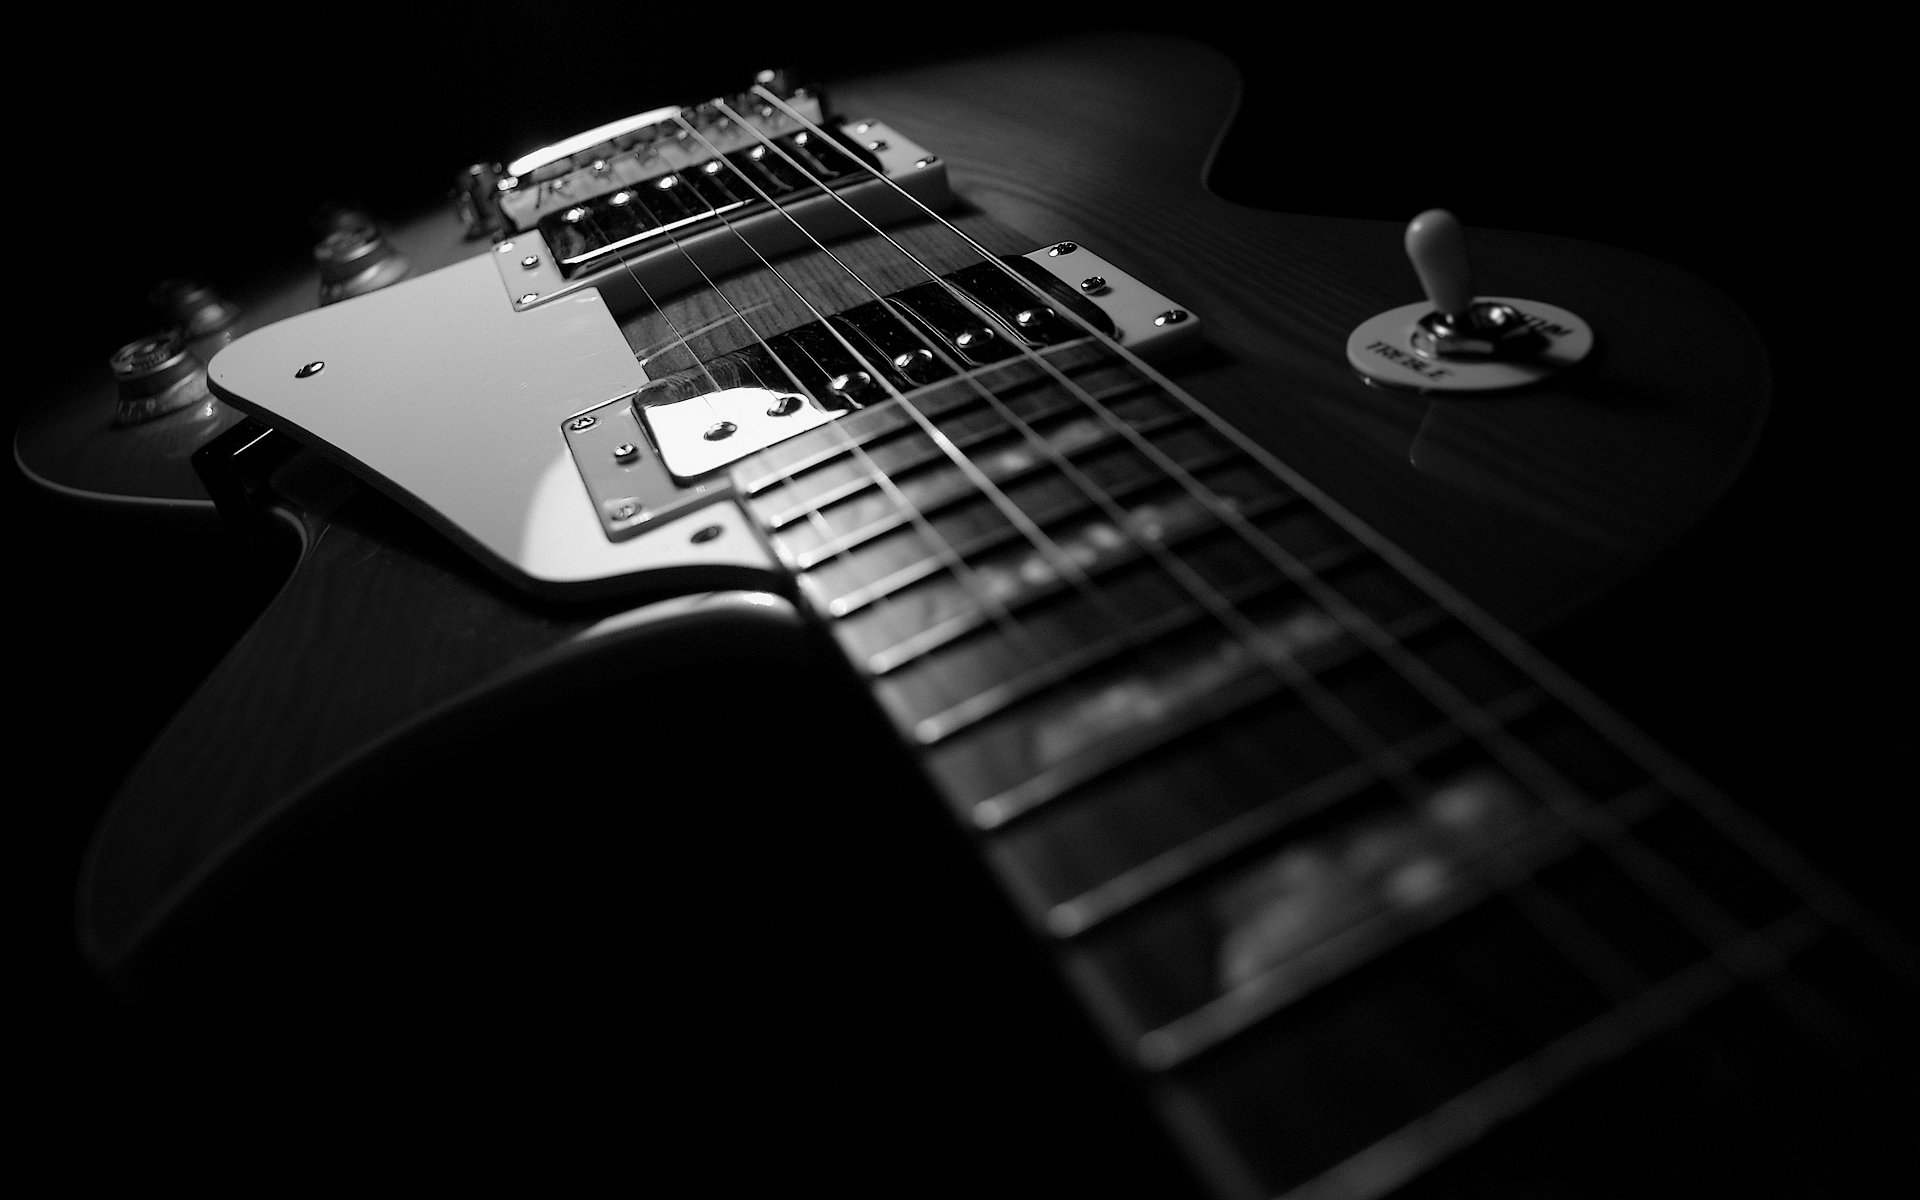 Guitar Wallpaper Full HD